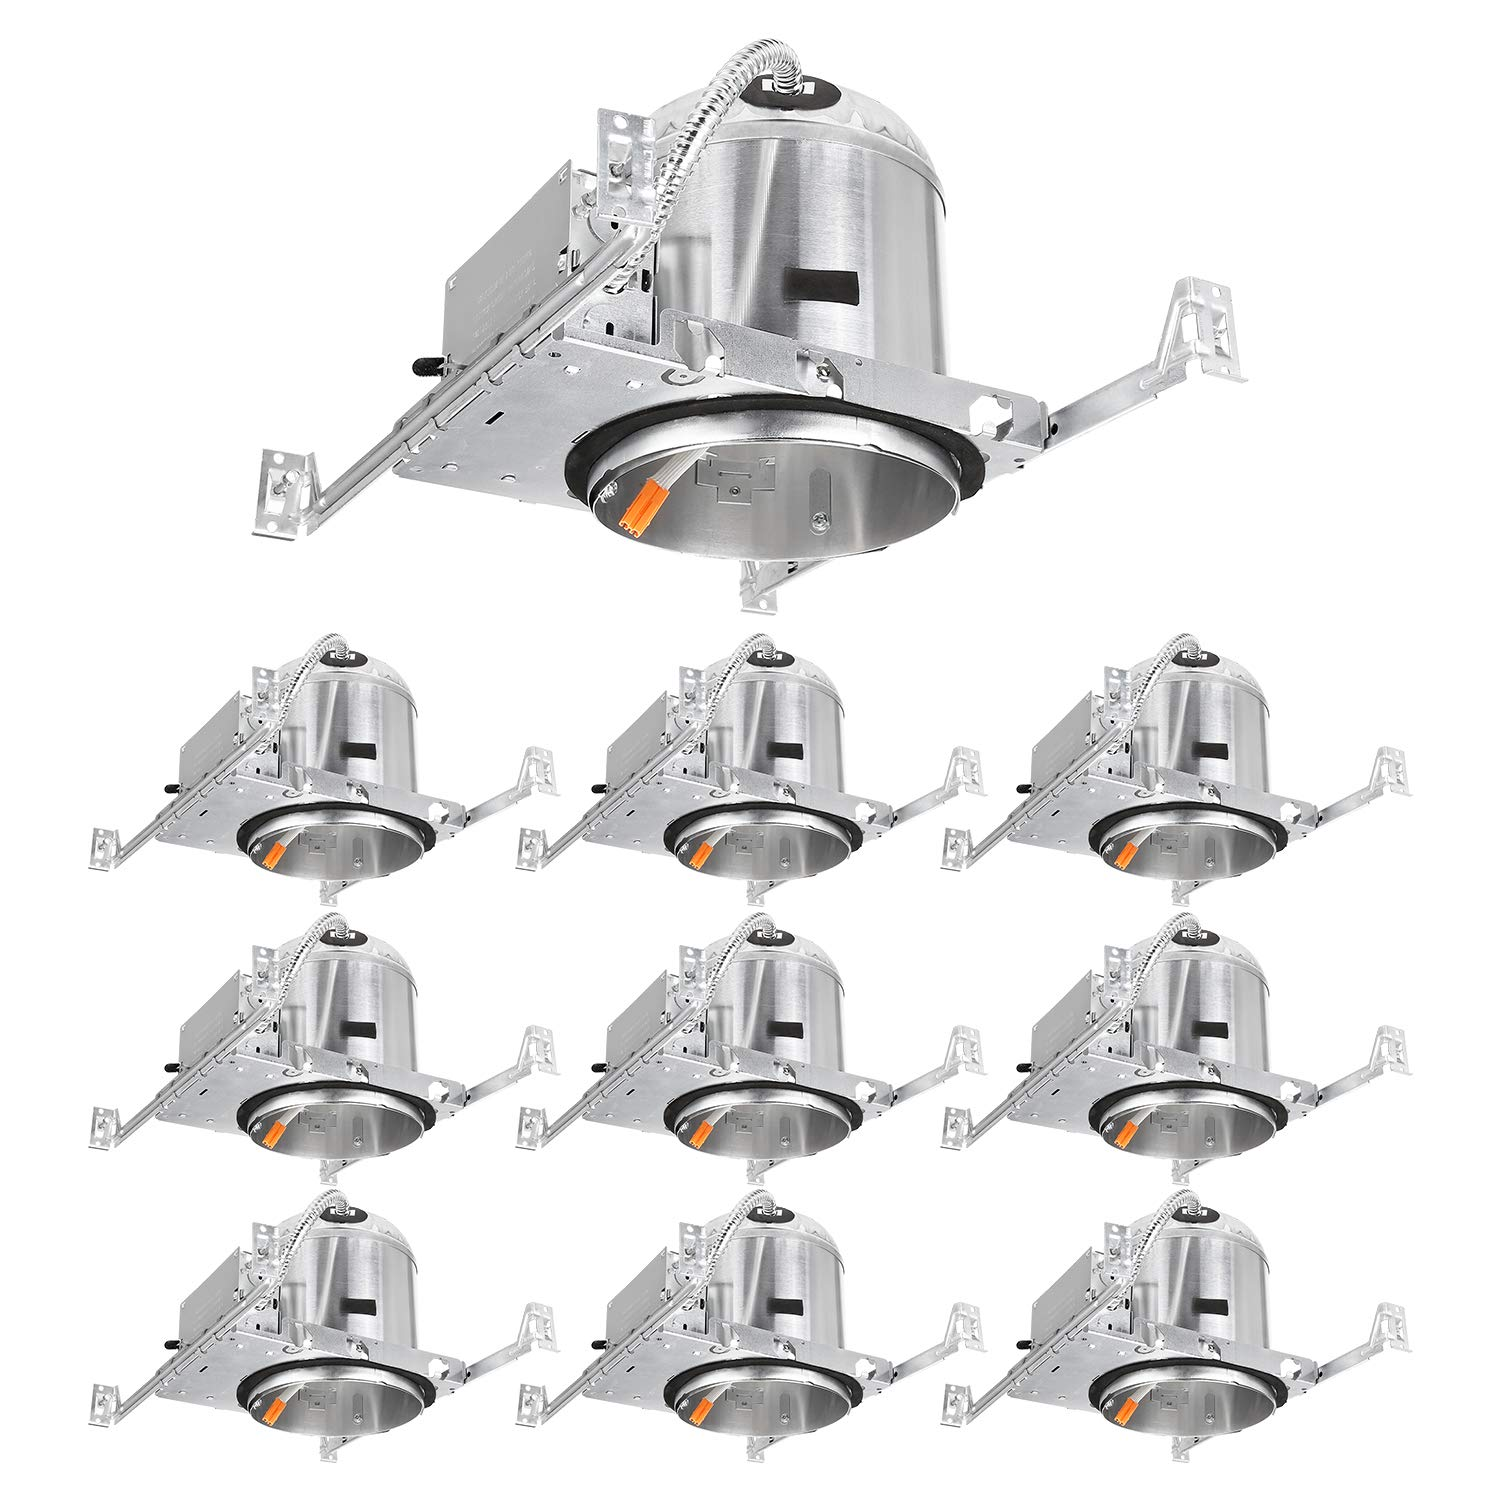 Pack of 10 OMDNCRH-6TP24-10P TORCHSTAR 6 Inch LED Ceiling Recessed Housing for New Construction ETL-Listed Aluminum IC Rated Air Tight TP24 Quick Connector 2 Years Warranty